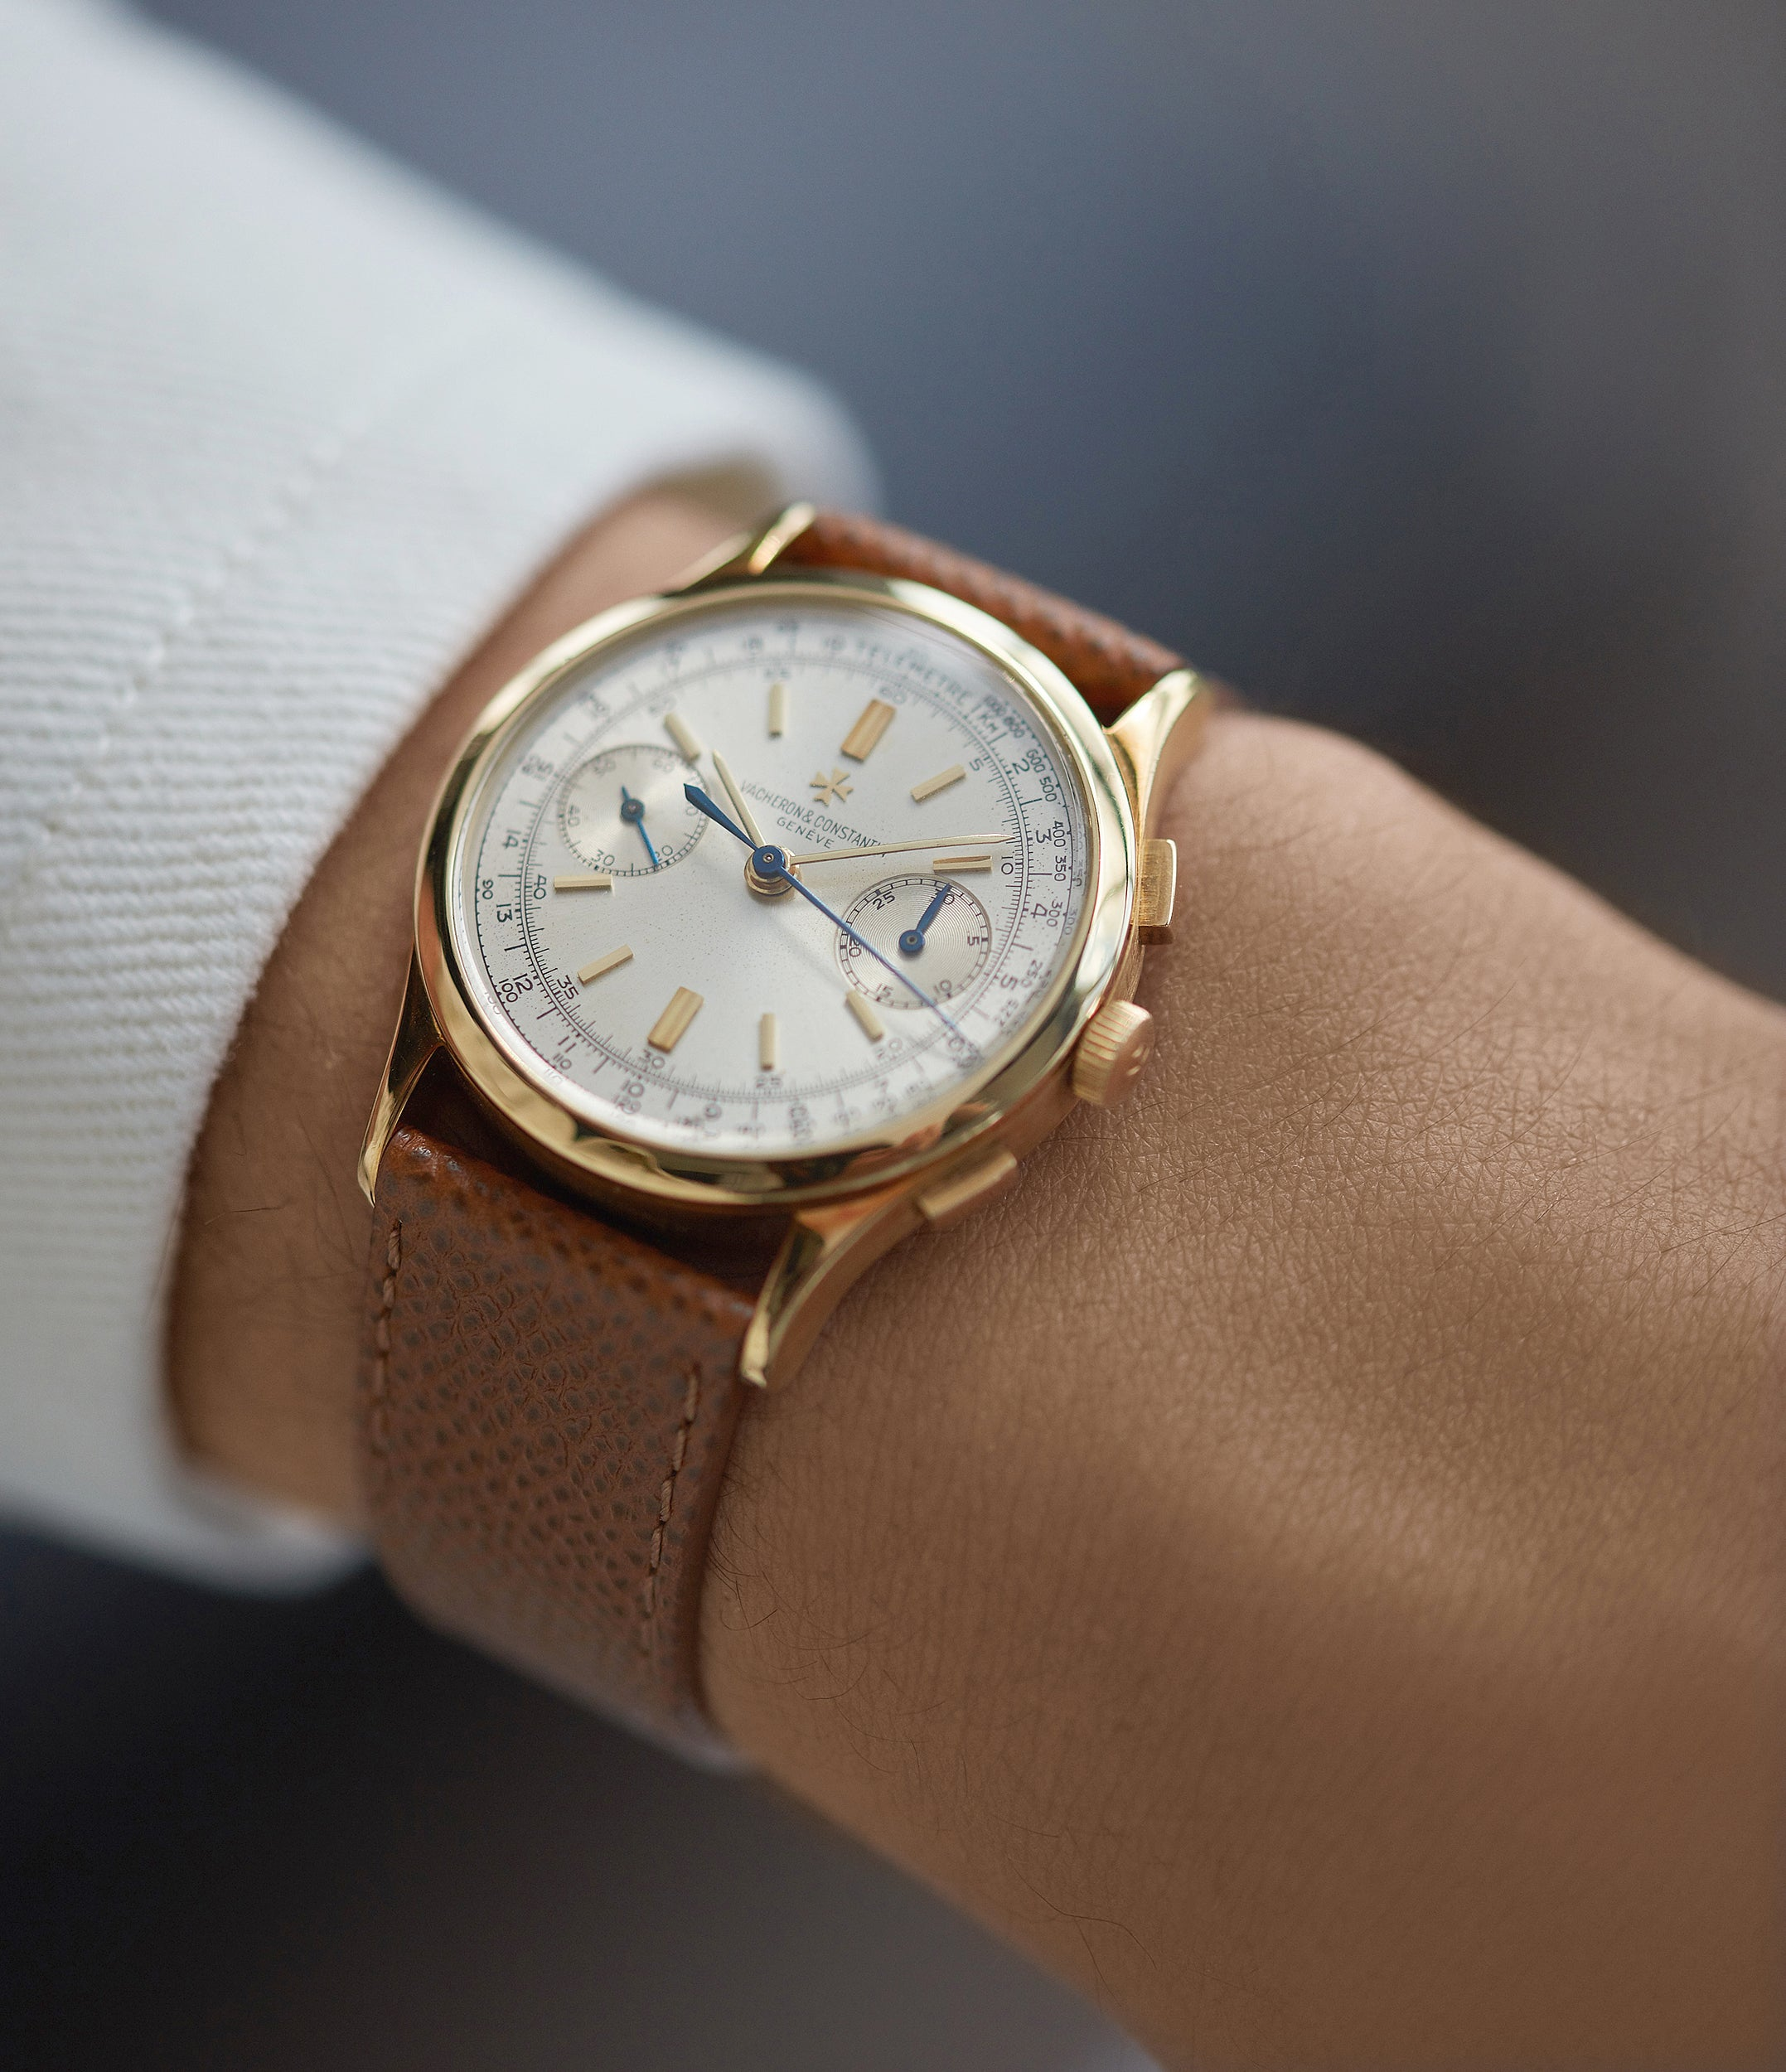 wristwatch Vacheron Constantin Chronograph Ref. 4072 yellow gold rare vintage dress watch for sale A Collected Man London British specialist rare watches